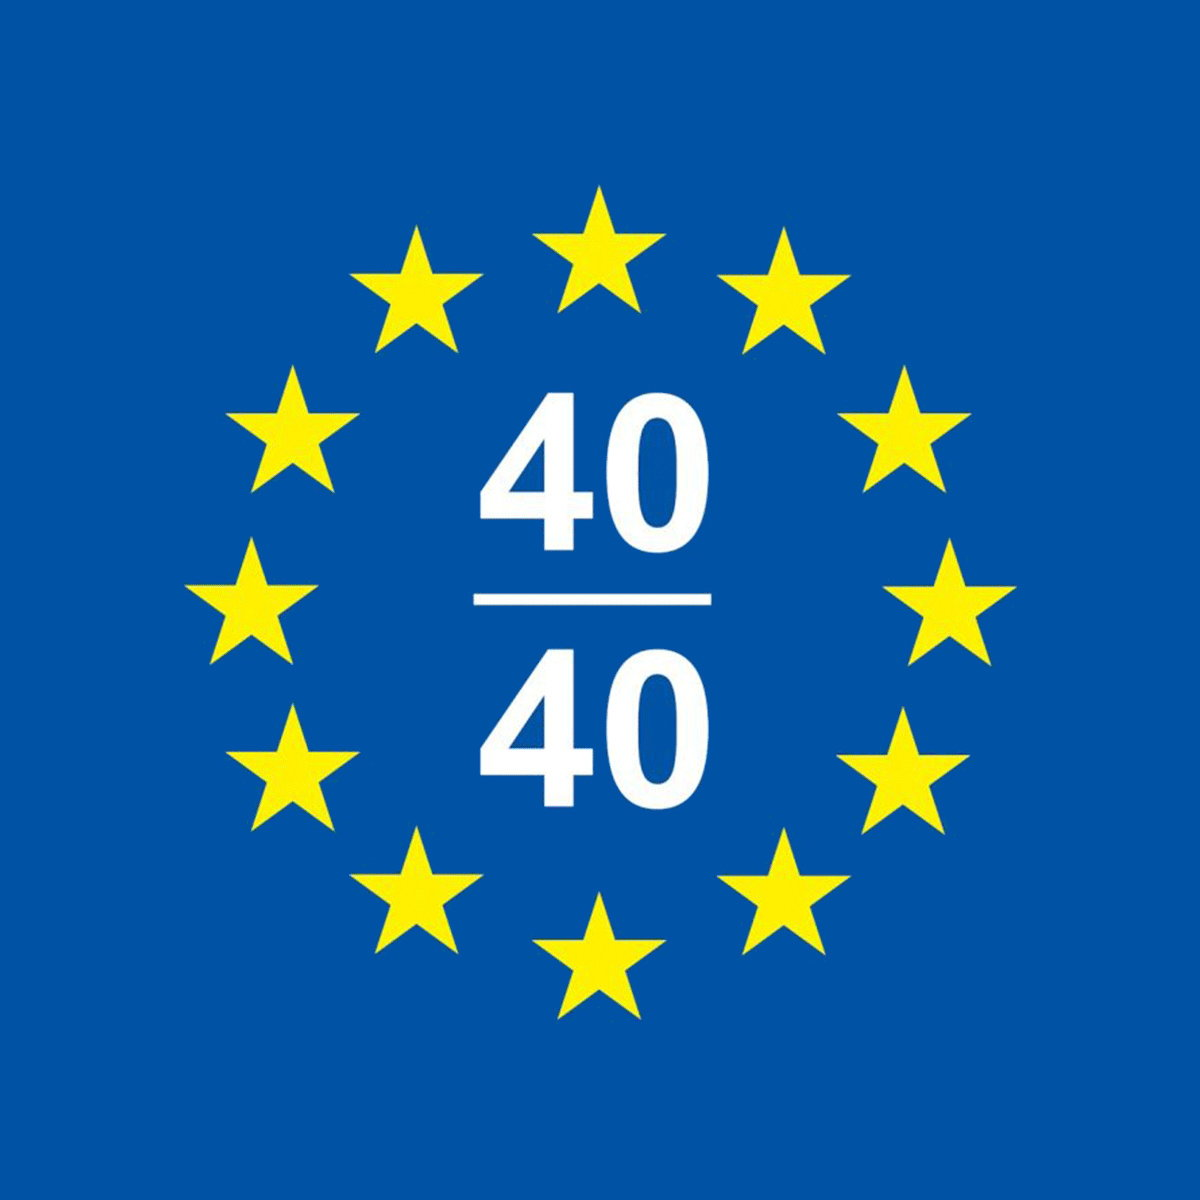 Europe 40 Under 40 - Call for Entries